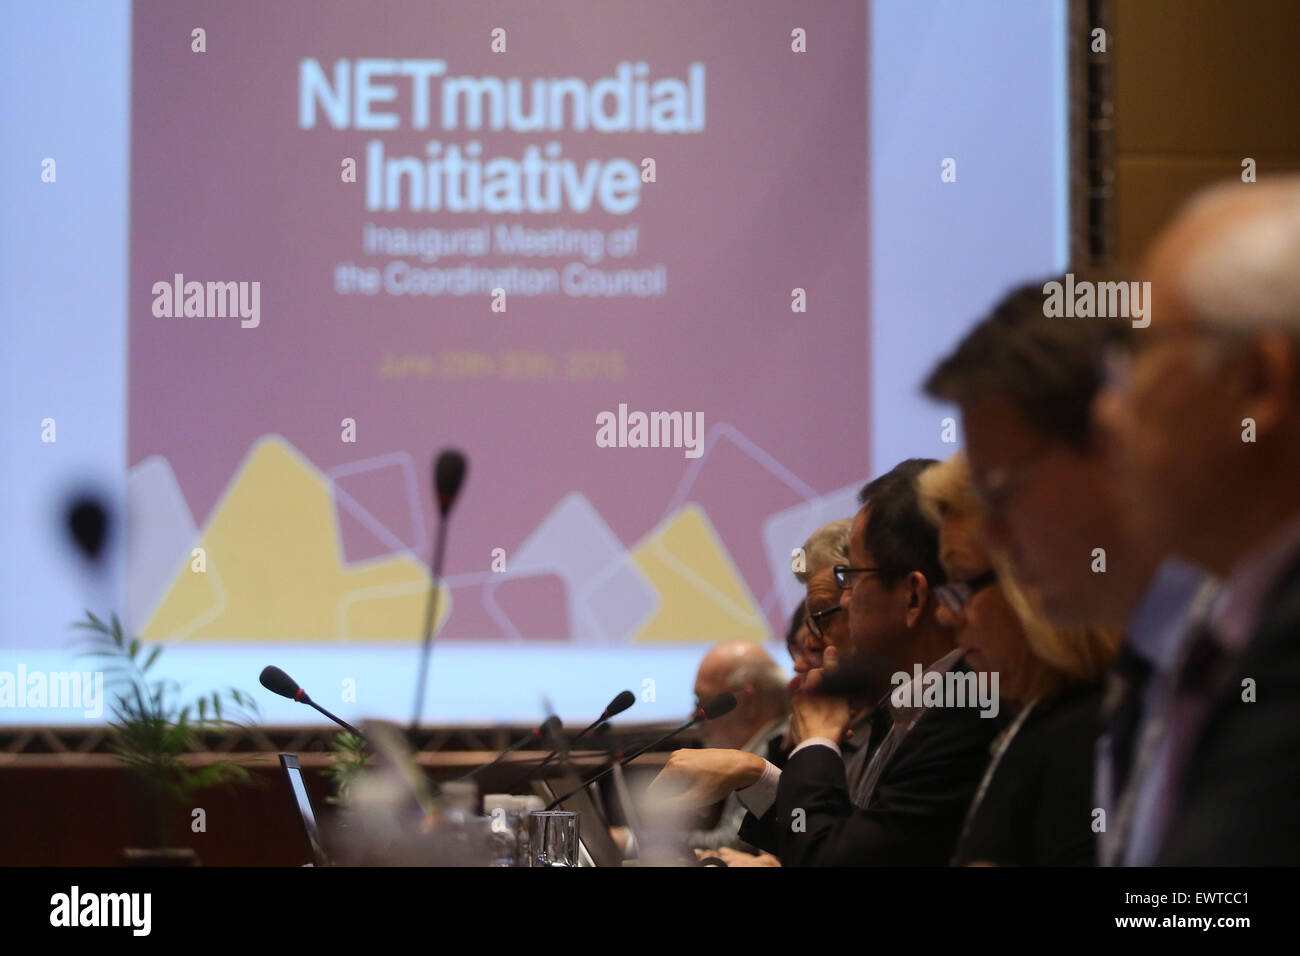 Sao Paulo, Brazil. 30th June, 2015. The Coordinating Council of the 'NETmundial' Initiative meets in Sao - Stock Image